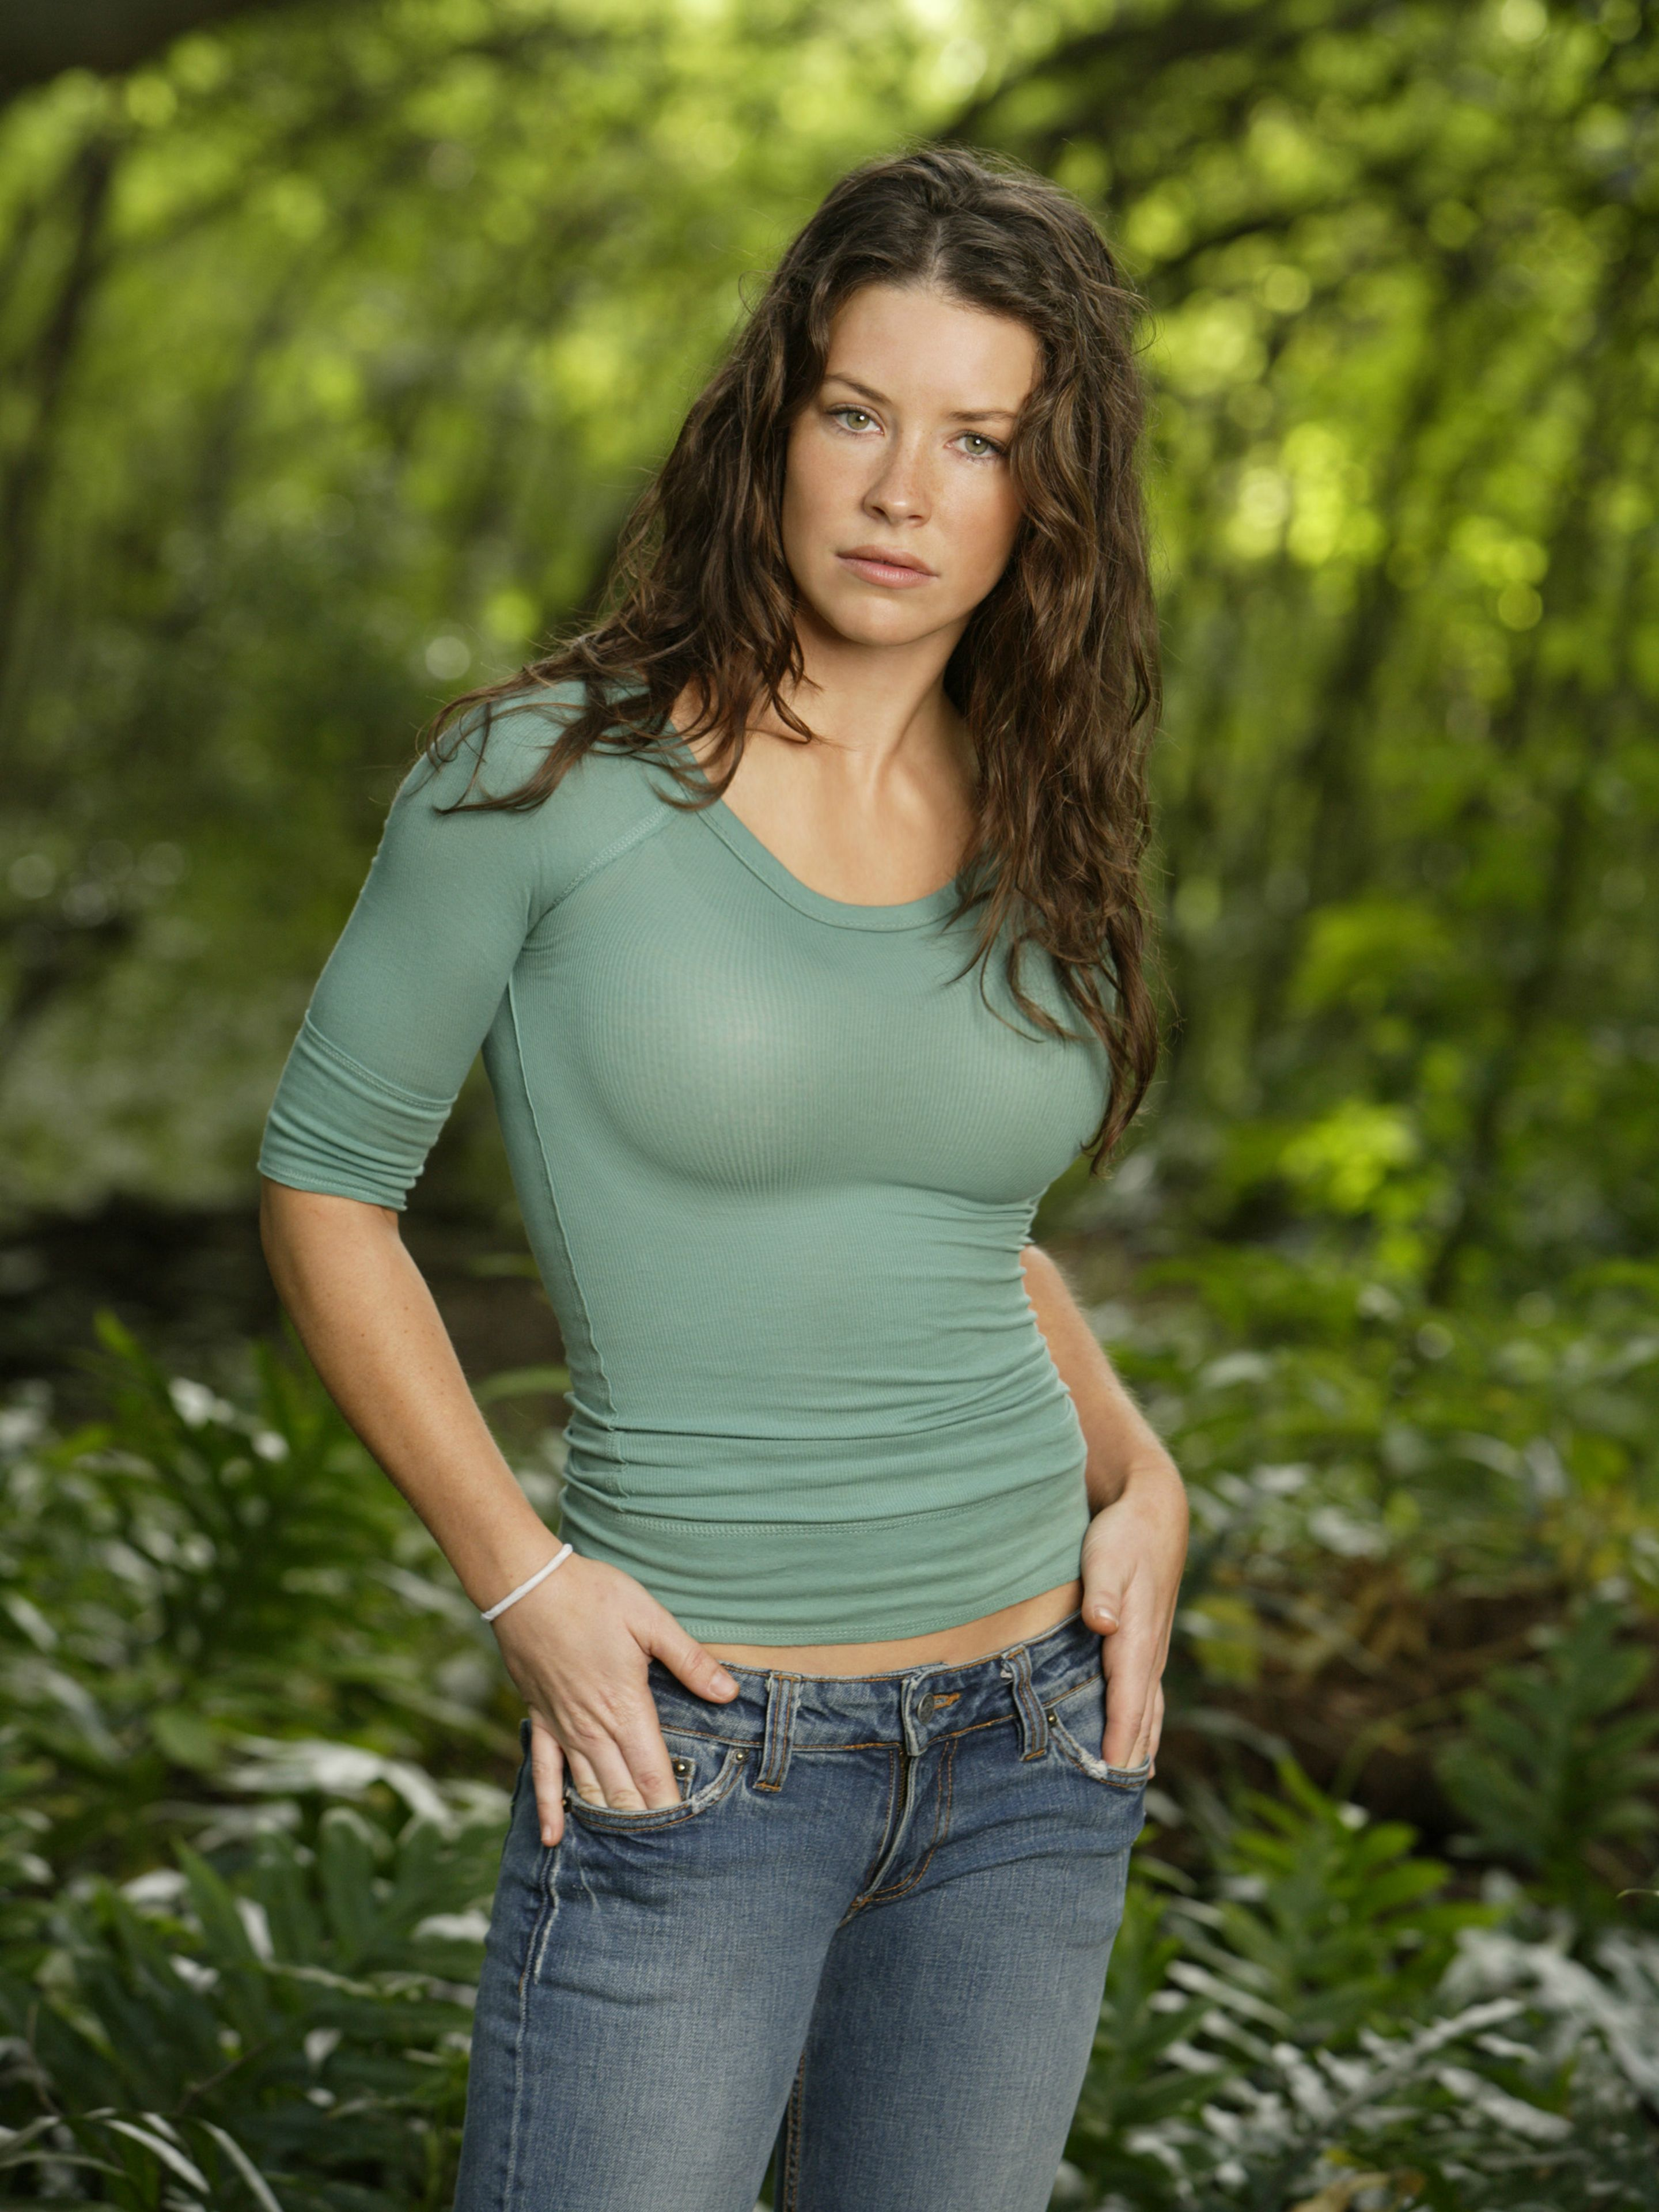 from Hamza naked photos of evangeline lilly